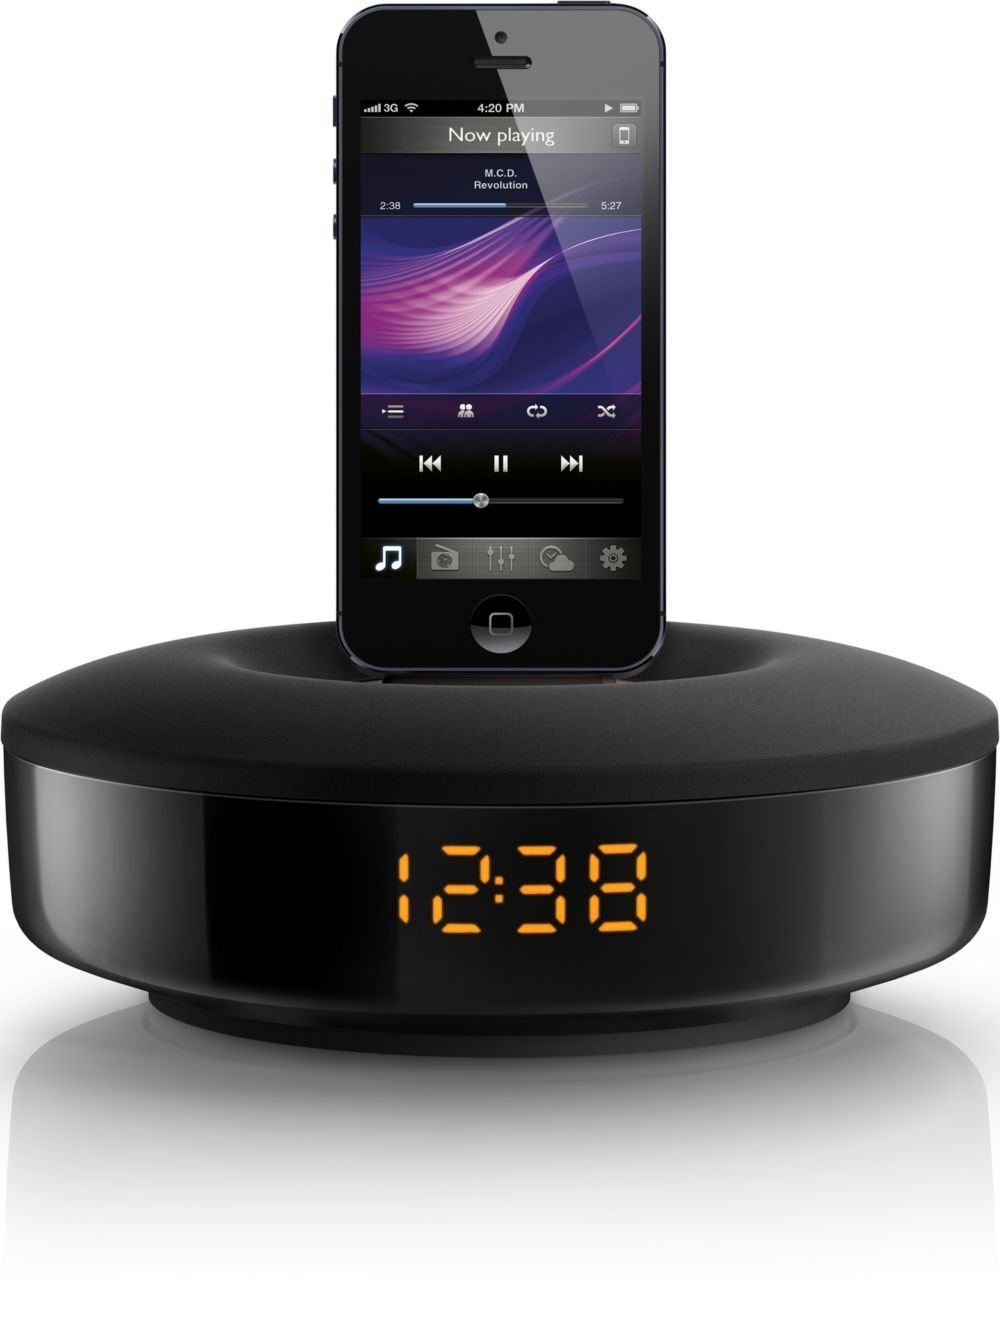 7 iphone 5 alarm clocks with lightning connector iphoneness. Black Bedroom Furniture Sets. Home Design Ideas